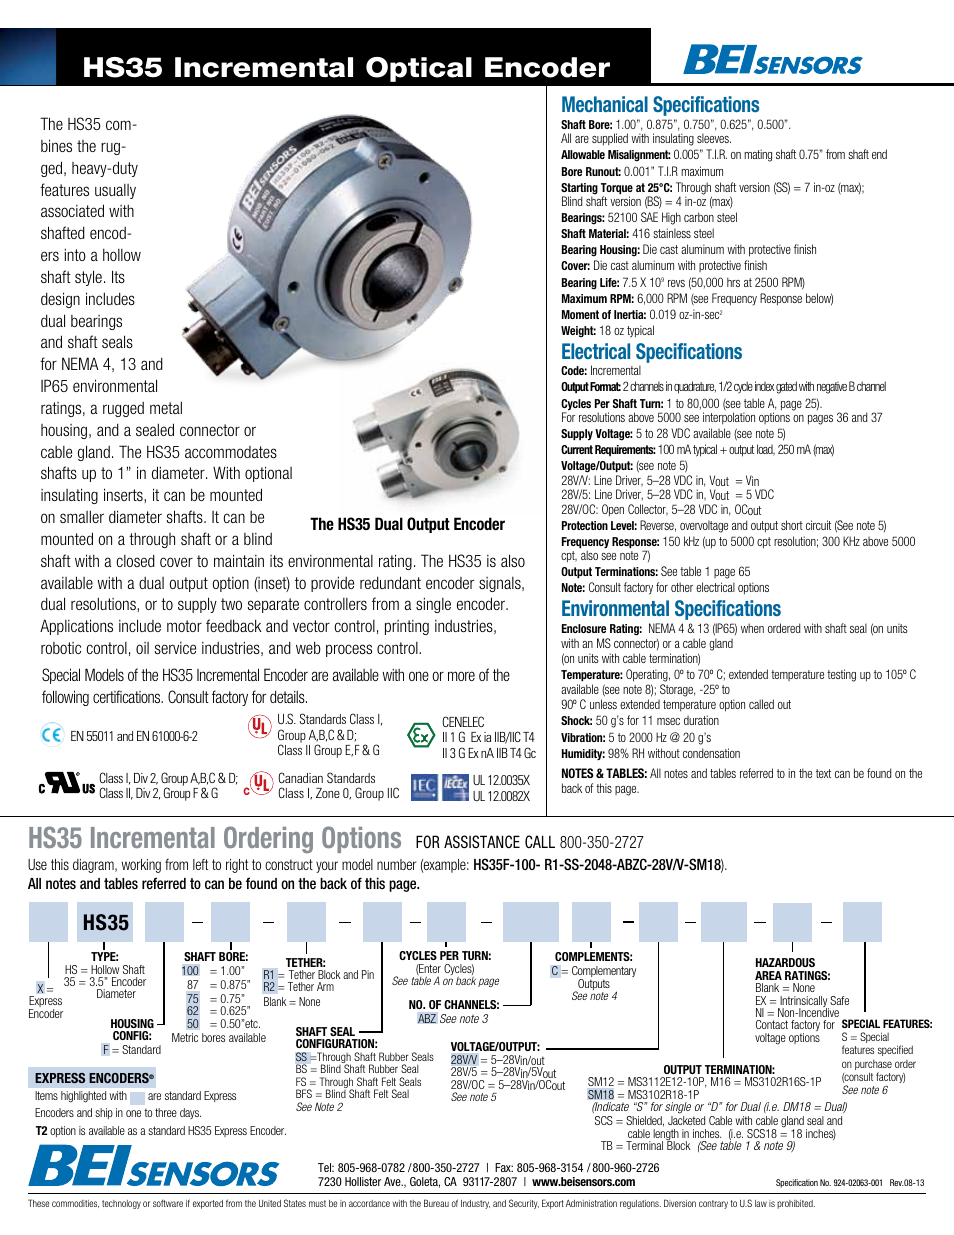 BEI Sensors HS35 Express Encoder User Manual | 2 pages | Also for: HS35  Incremental Hollow Shaft Encoder